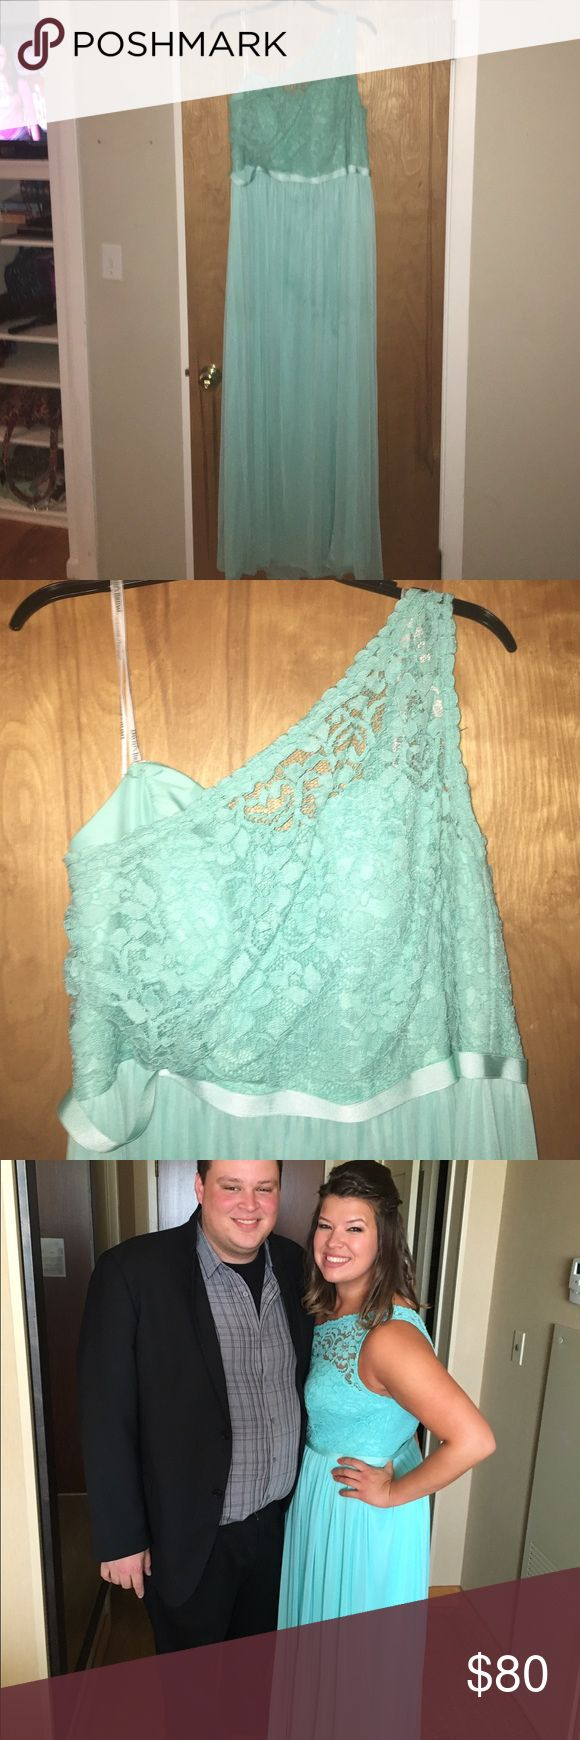 Turquoise One Strap Dress Beautiful color: almost a Tiffany blue. Lace top with a Chaffon bottom. Worn ONE TIME. Awesome Condition!! David's Bridal Dresses One Shoulder